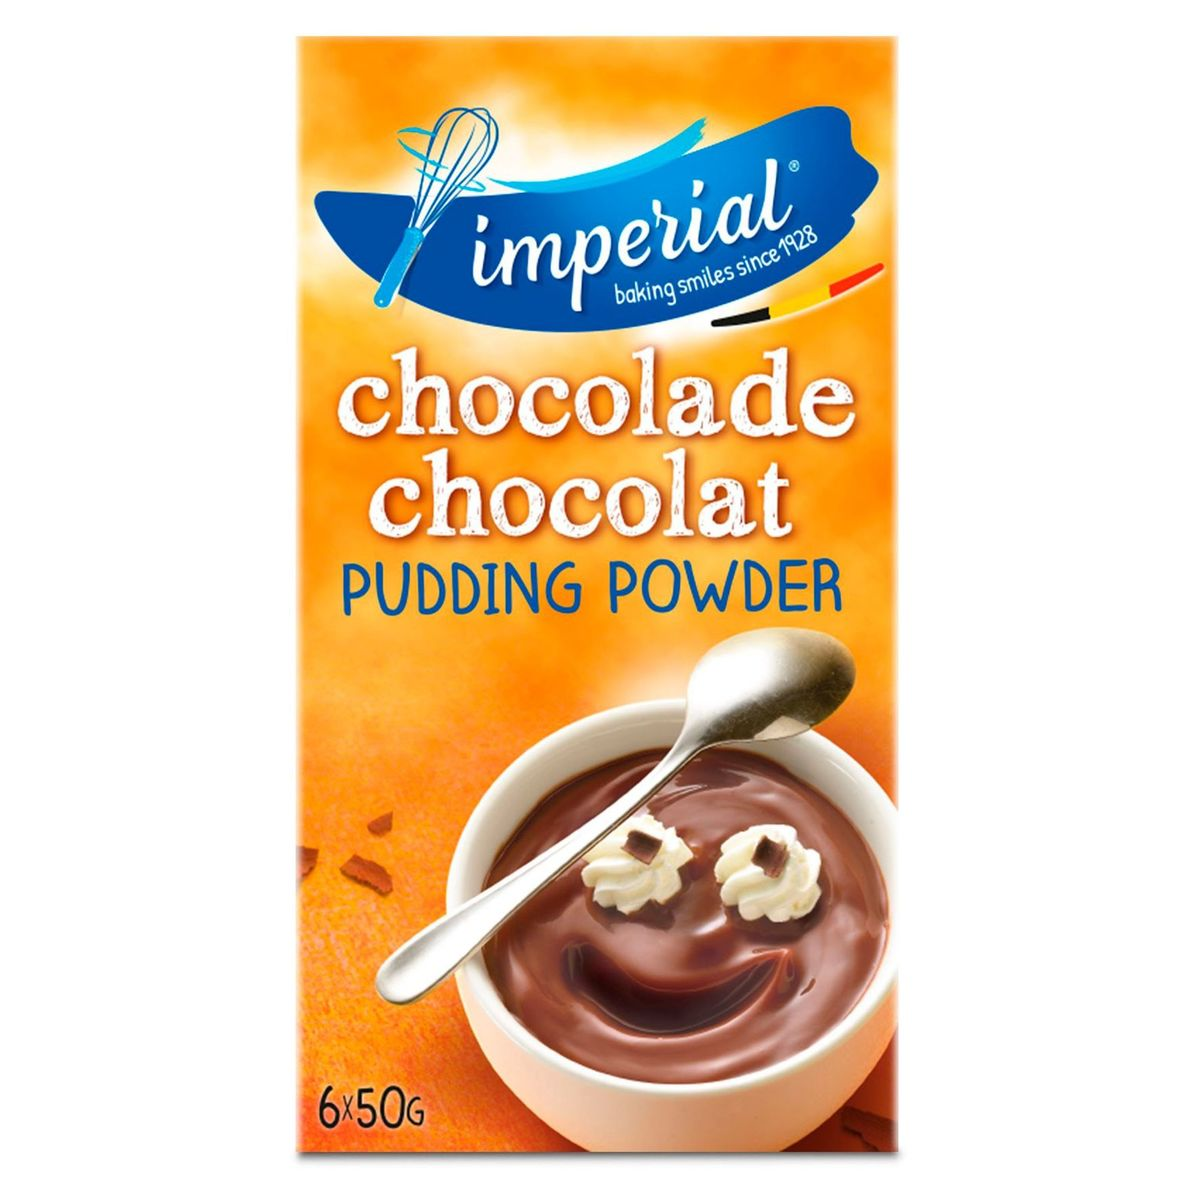 Imperial Pudding Powder Chocolade Smaak 6 x 50 g